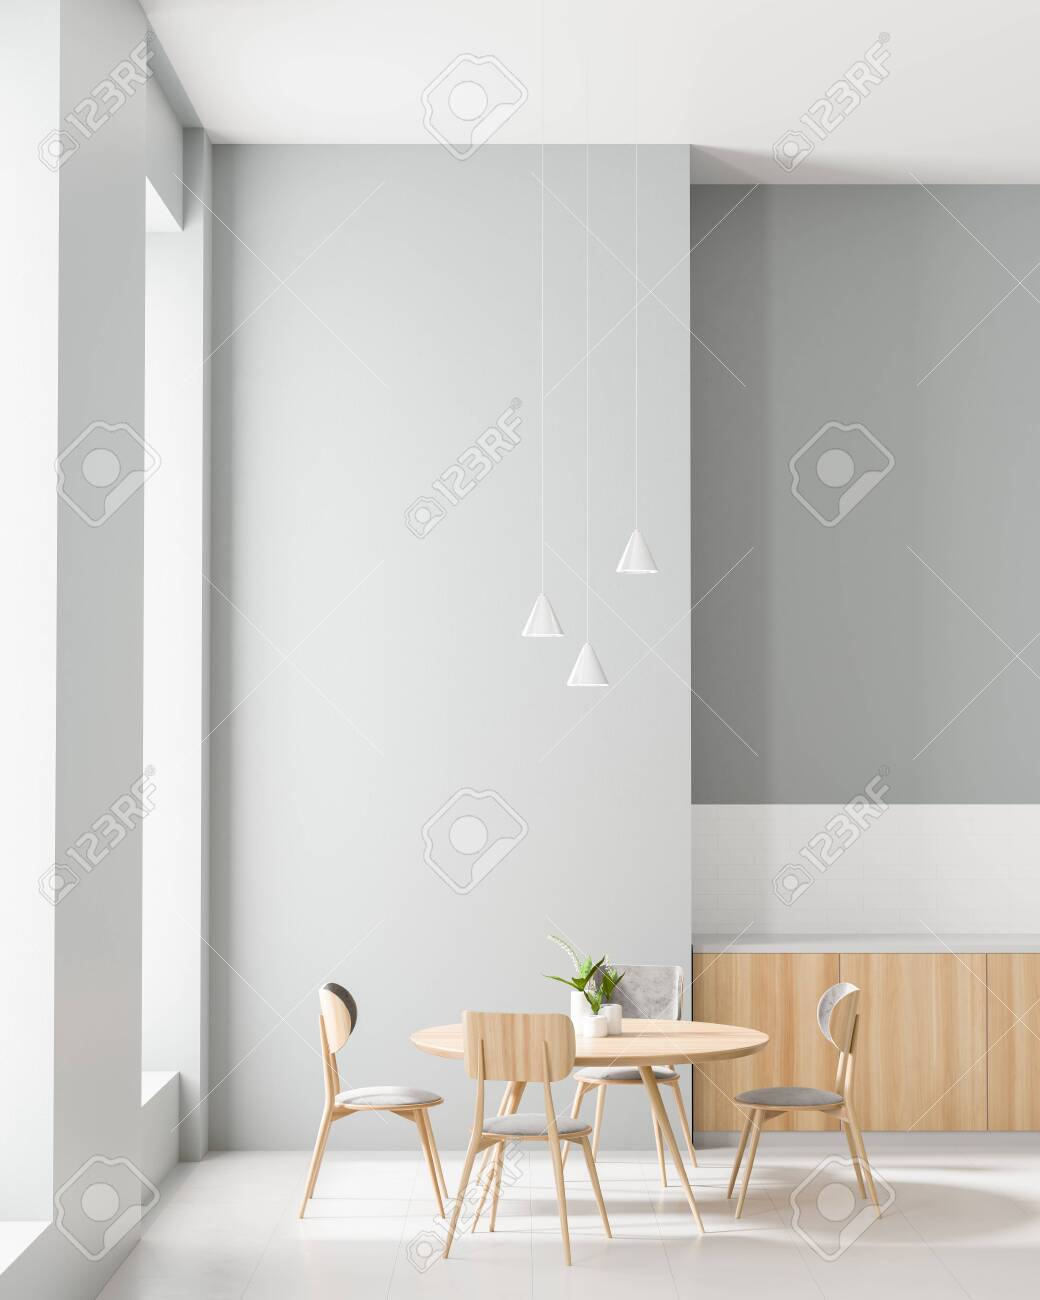 Spacious Modern Kitchen With Dining Table Minimalist Dining Stock Photo Picture And Royalty Free Image Image 122503379